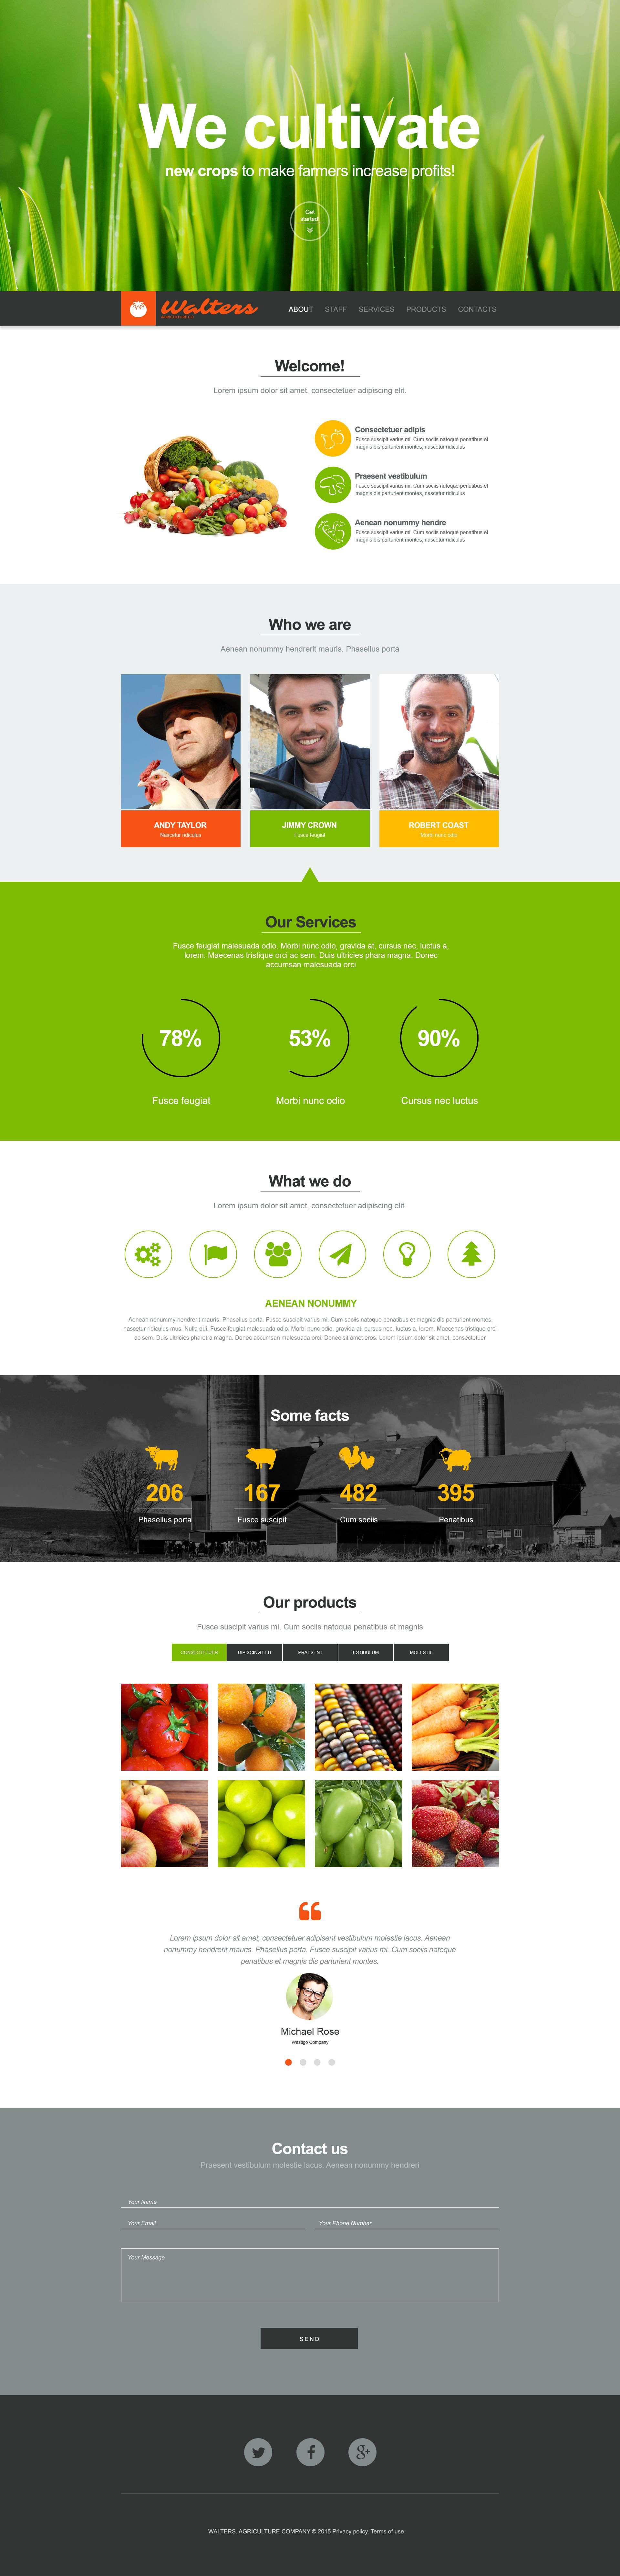 Agriculture Muse Template - screenshot